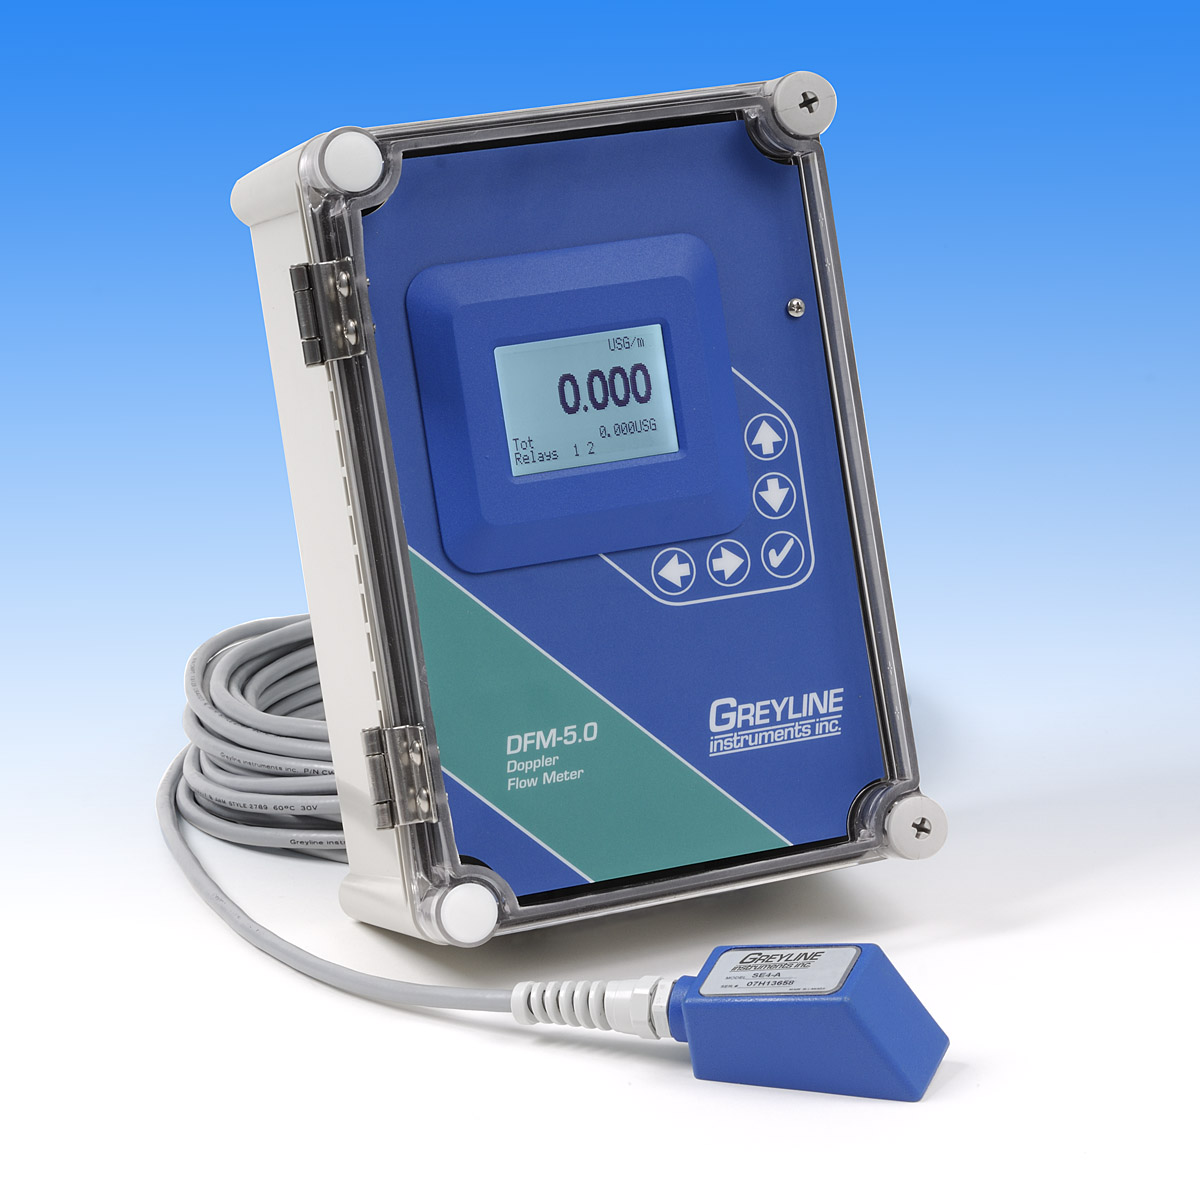 The new DFM 5.0 Doppler Flow Meter from Greyline Instruments measures flow from outside a pipe.